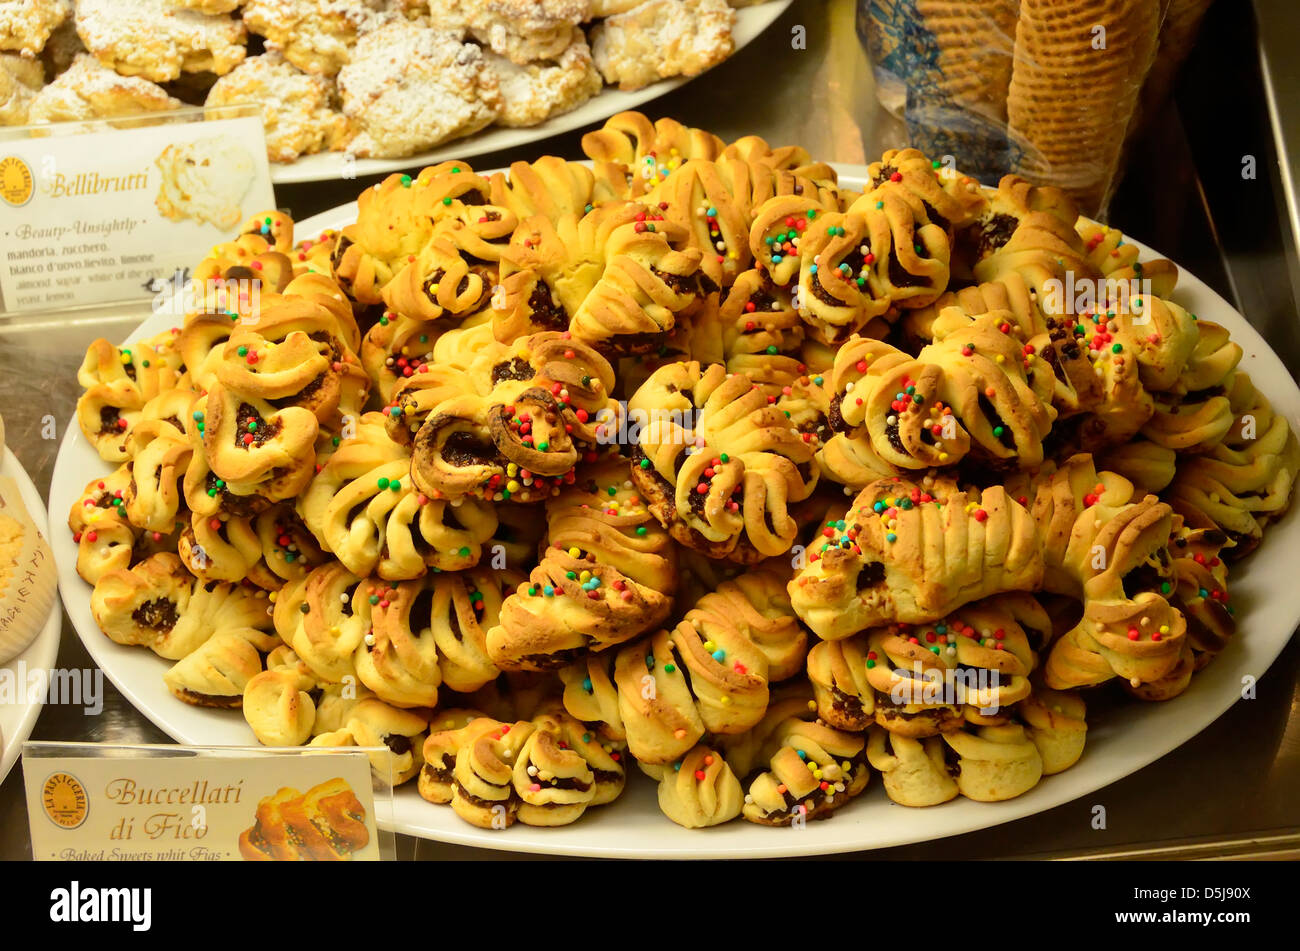 Sweets in a bakery in the historic hilltop village of Erice, Italy. - Stock Image